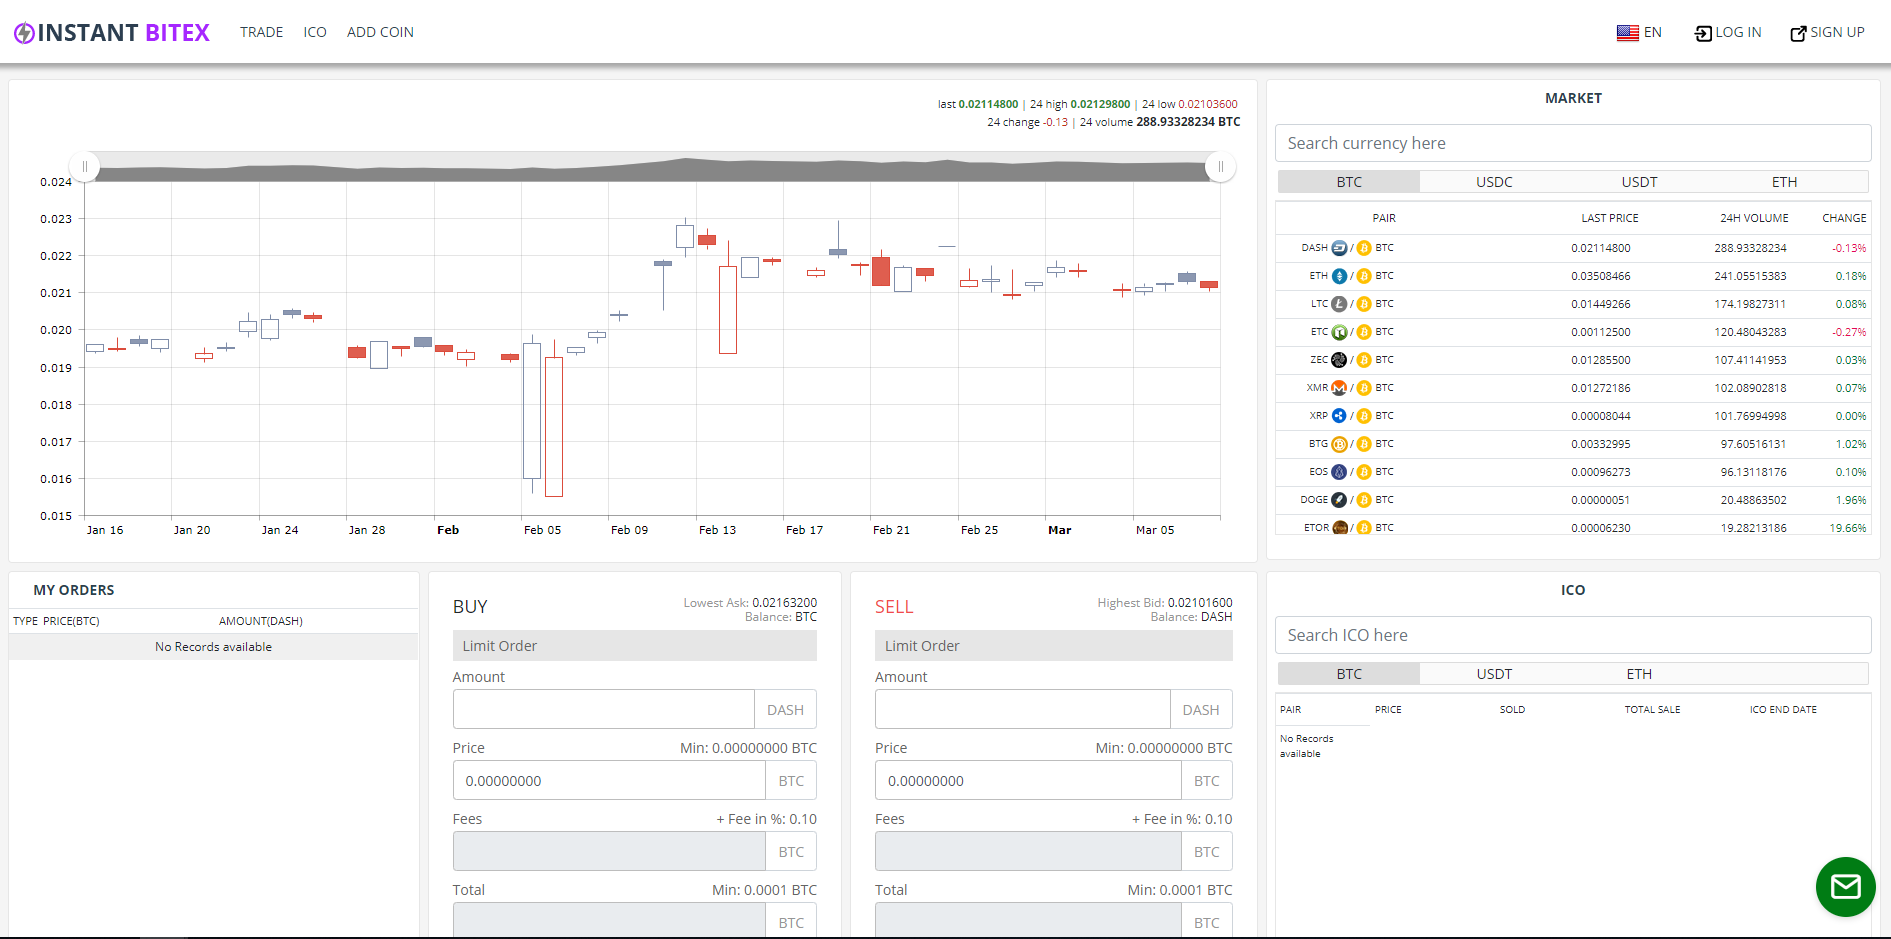 Instant Bitex Trading View